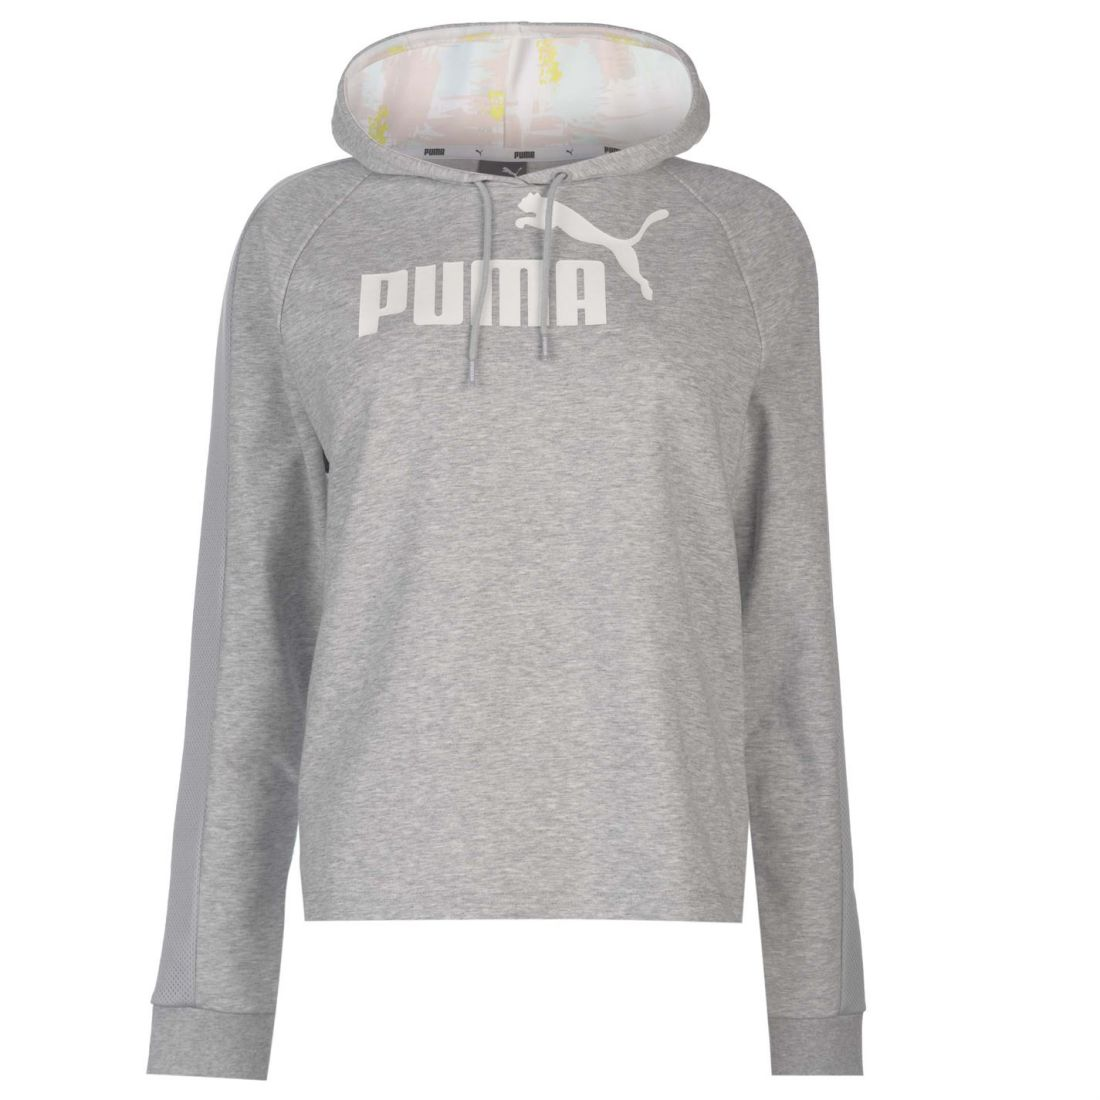 30e5454fde74b9 Details about Puma Womens OTH Crop Hoody Hoodie Hooded Top Lightweight Mesh  Print